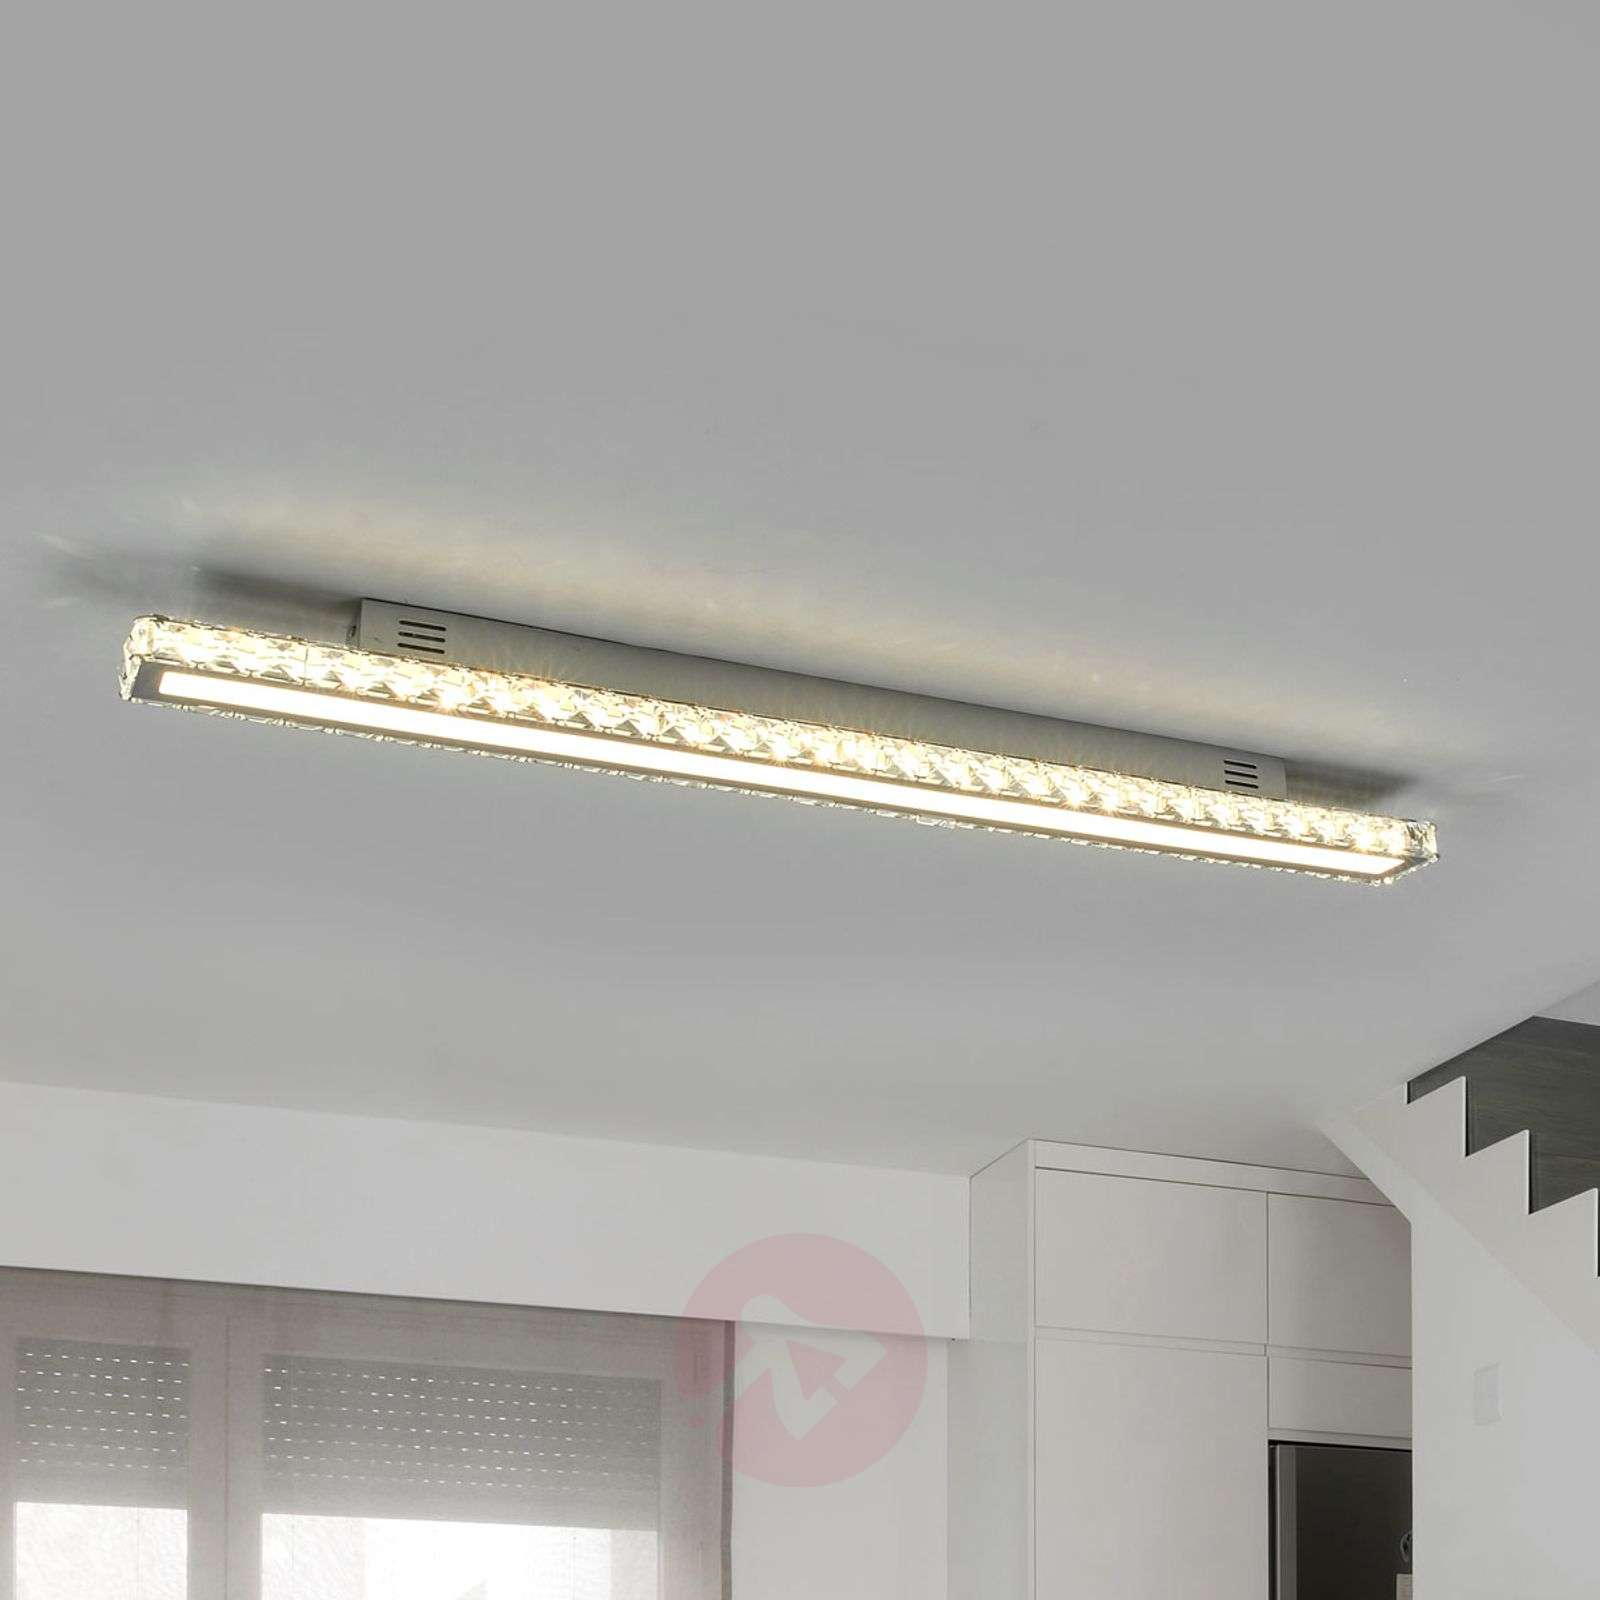 Plafoniere Cristallo : Acquista potente plafoniera led di cristallo sesilia lampade.it